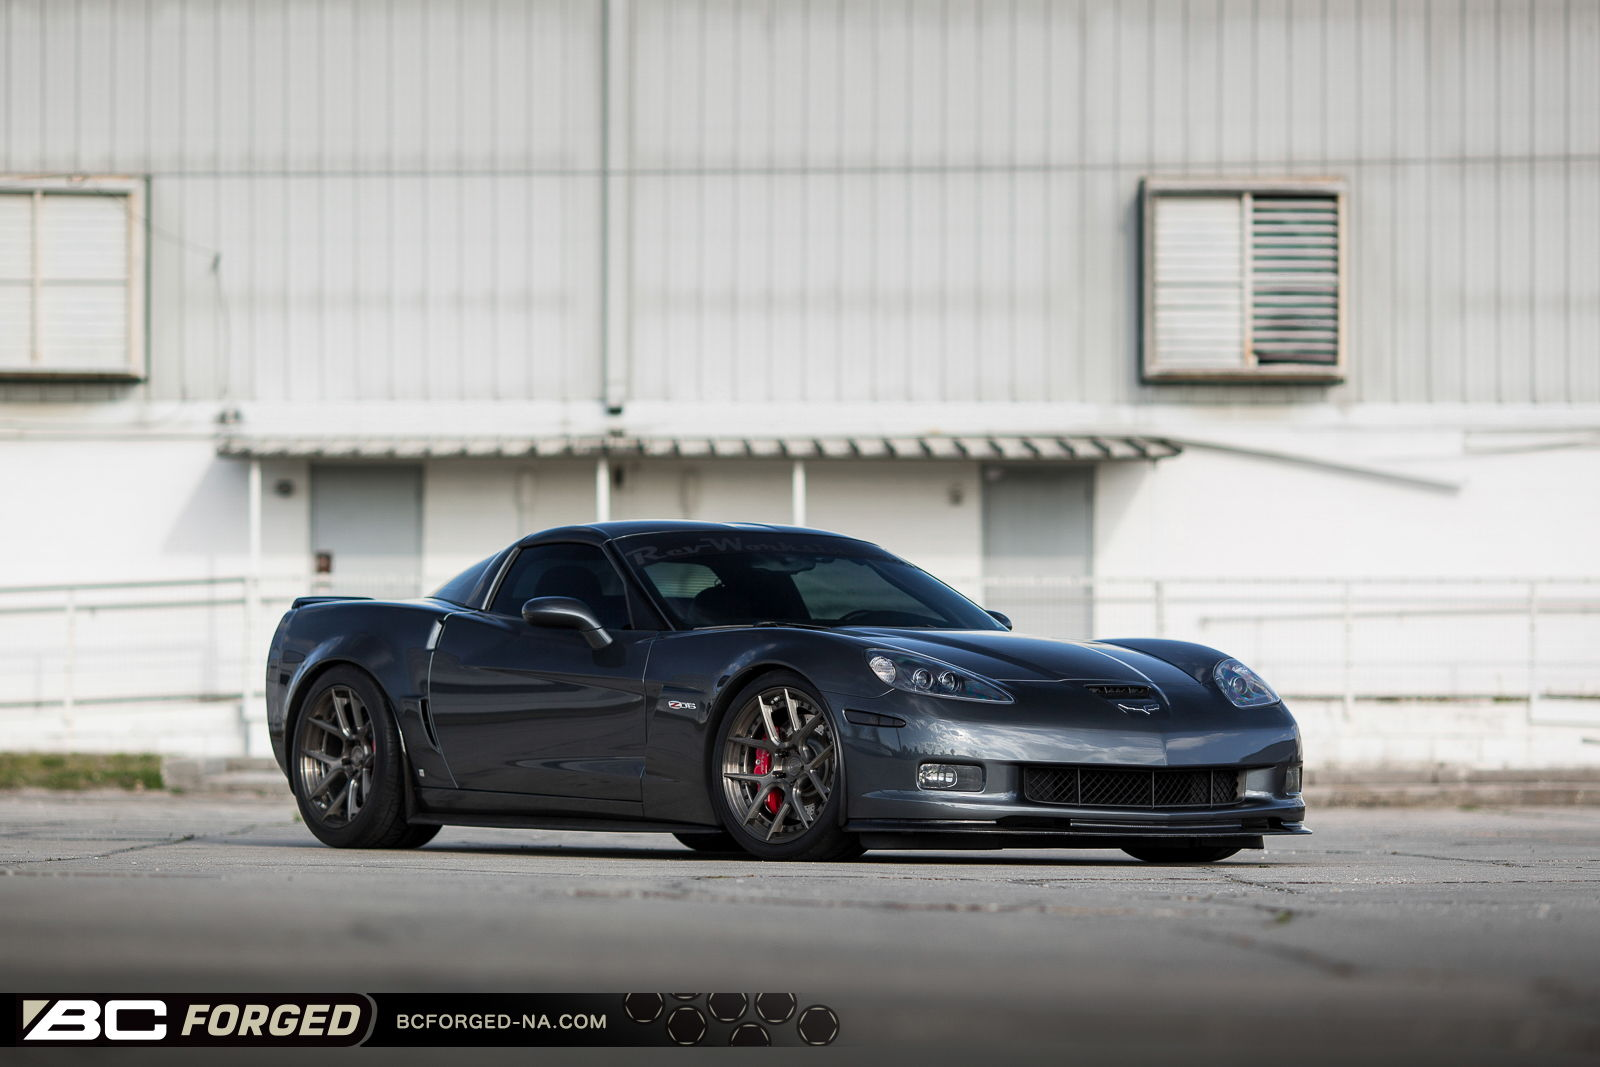 zr1 bc forged max concave wheels for chevrolet corvette c6. Black Bedroom Furniture Sets. Home Design Ideas